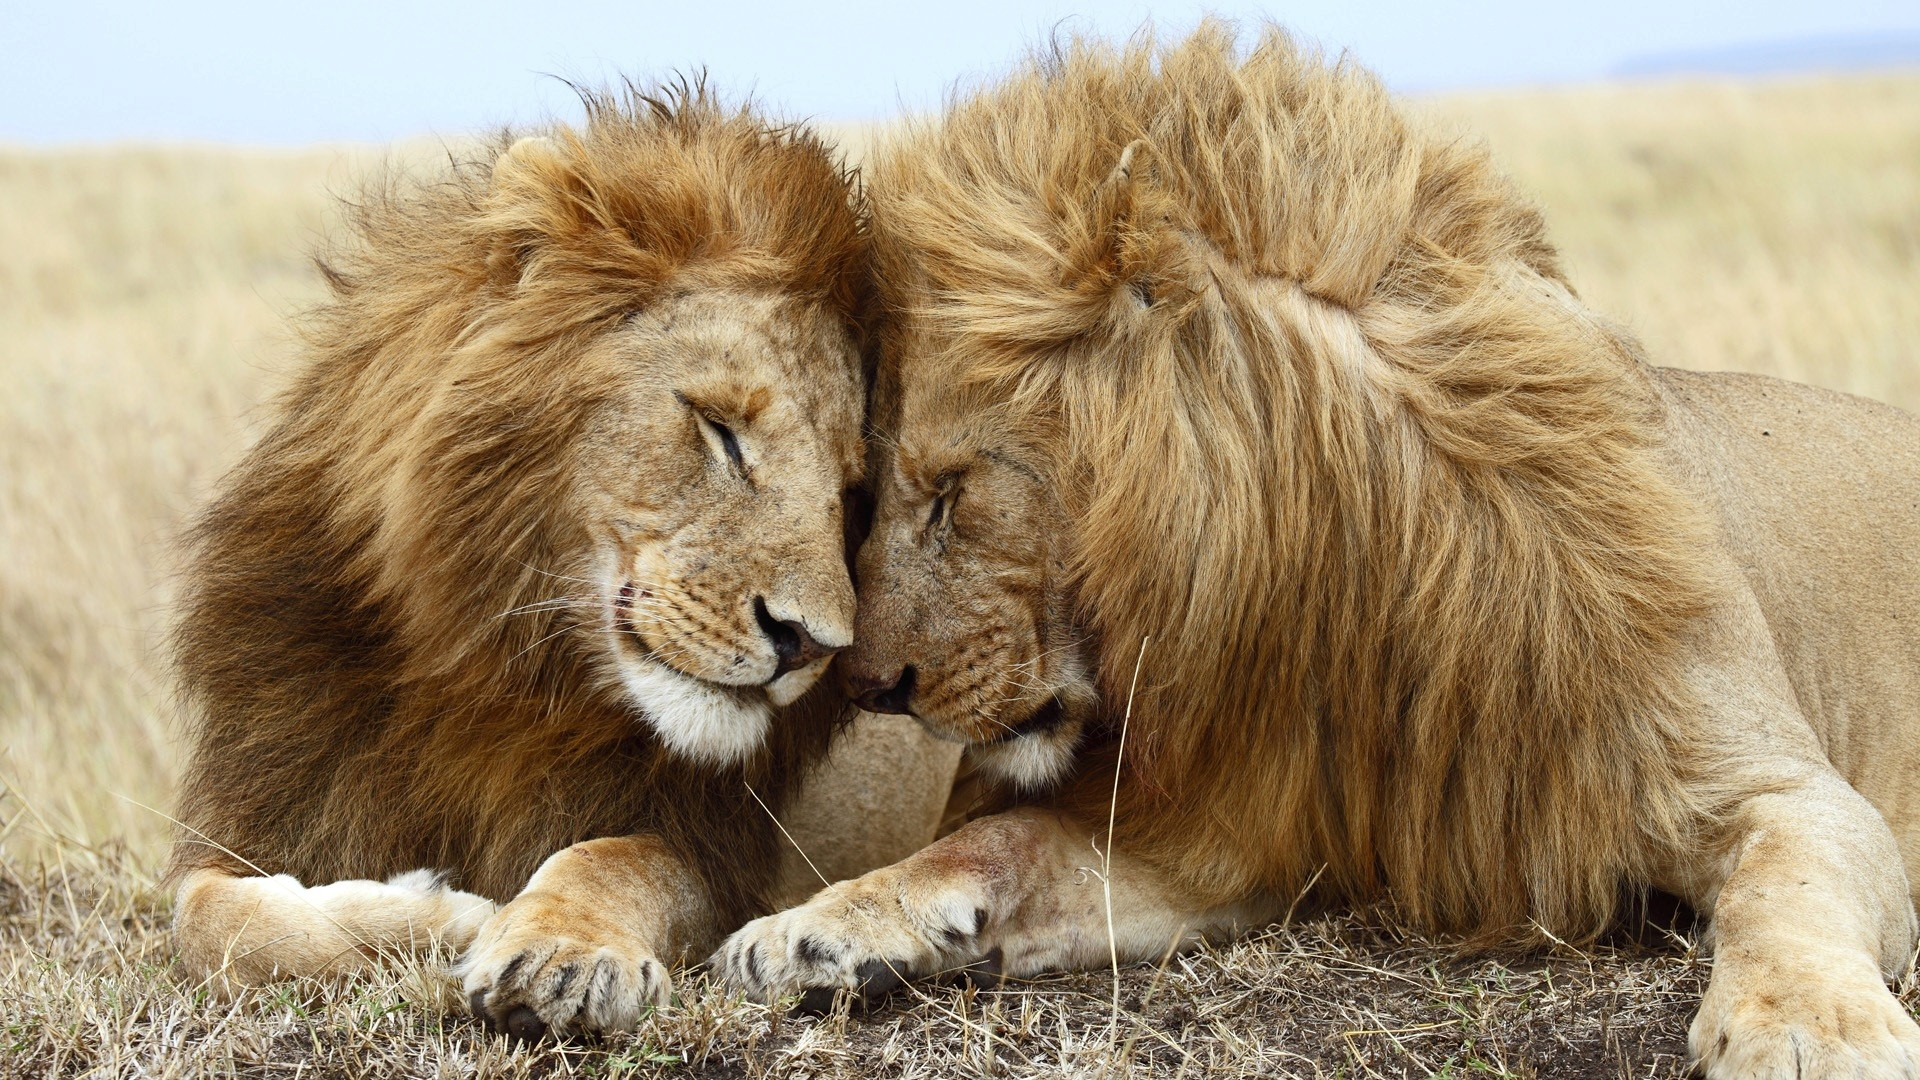 download lion couple wild animal wallpaper - wild animals for your